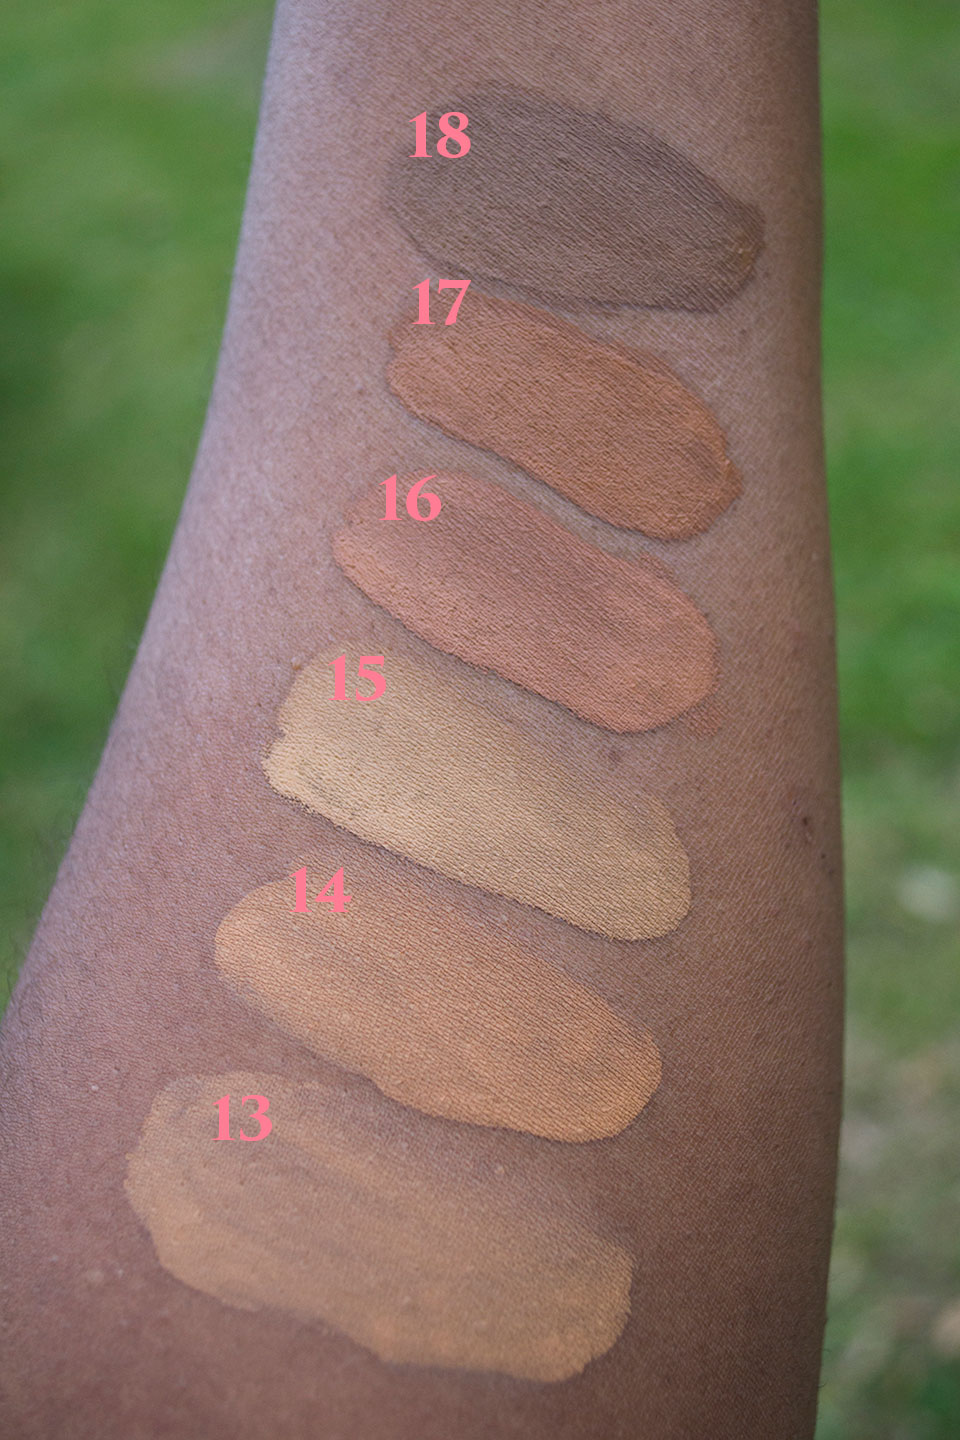 NYX Total Control Shades 13-18 - NYX Total Control Drop Foundation Swatches and Review by popular LA beauty blogger My Beauty Bunny